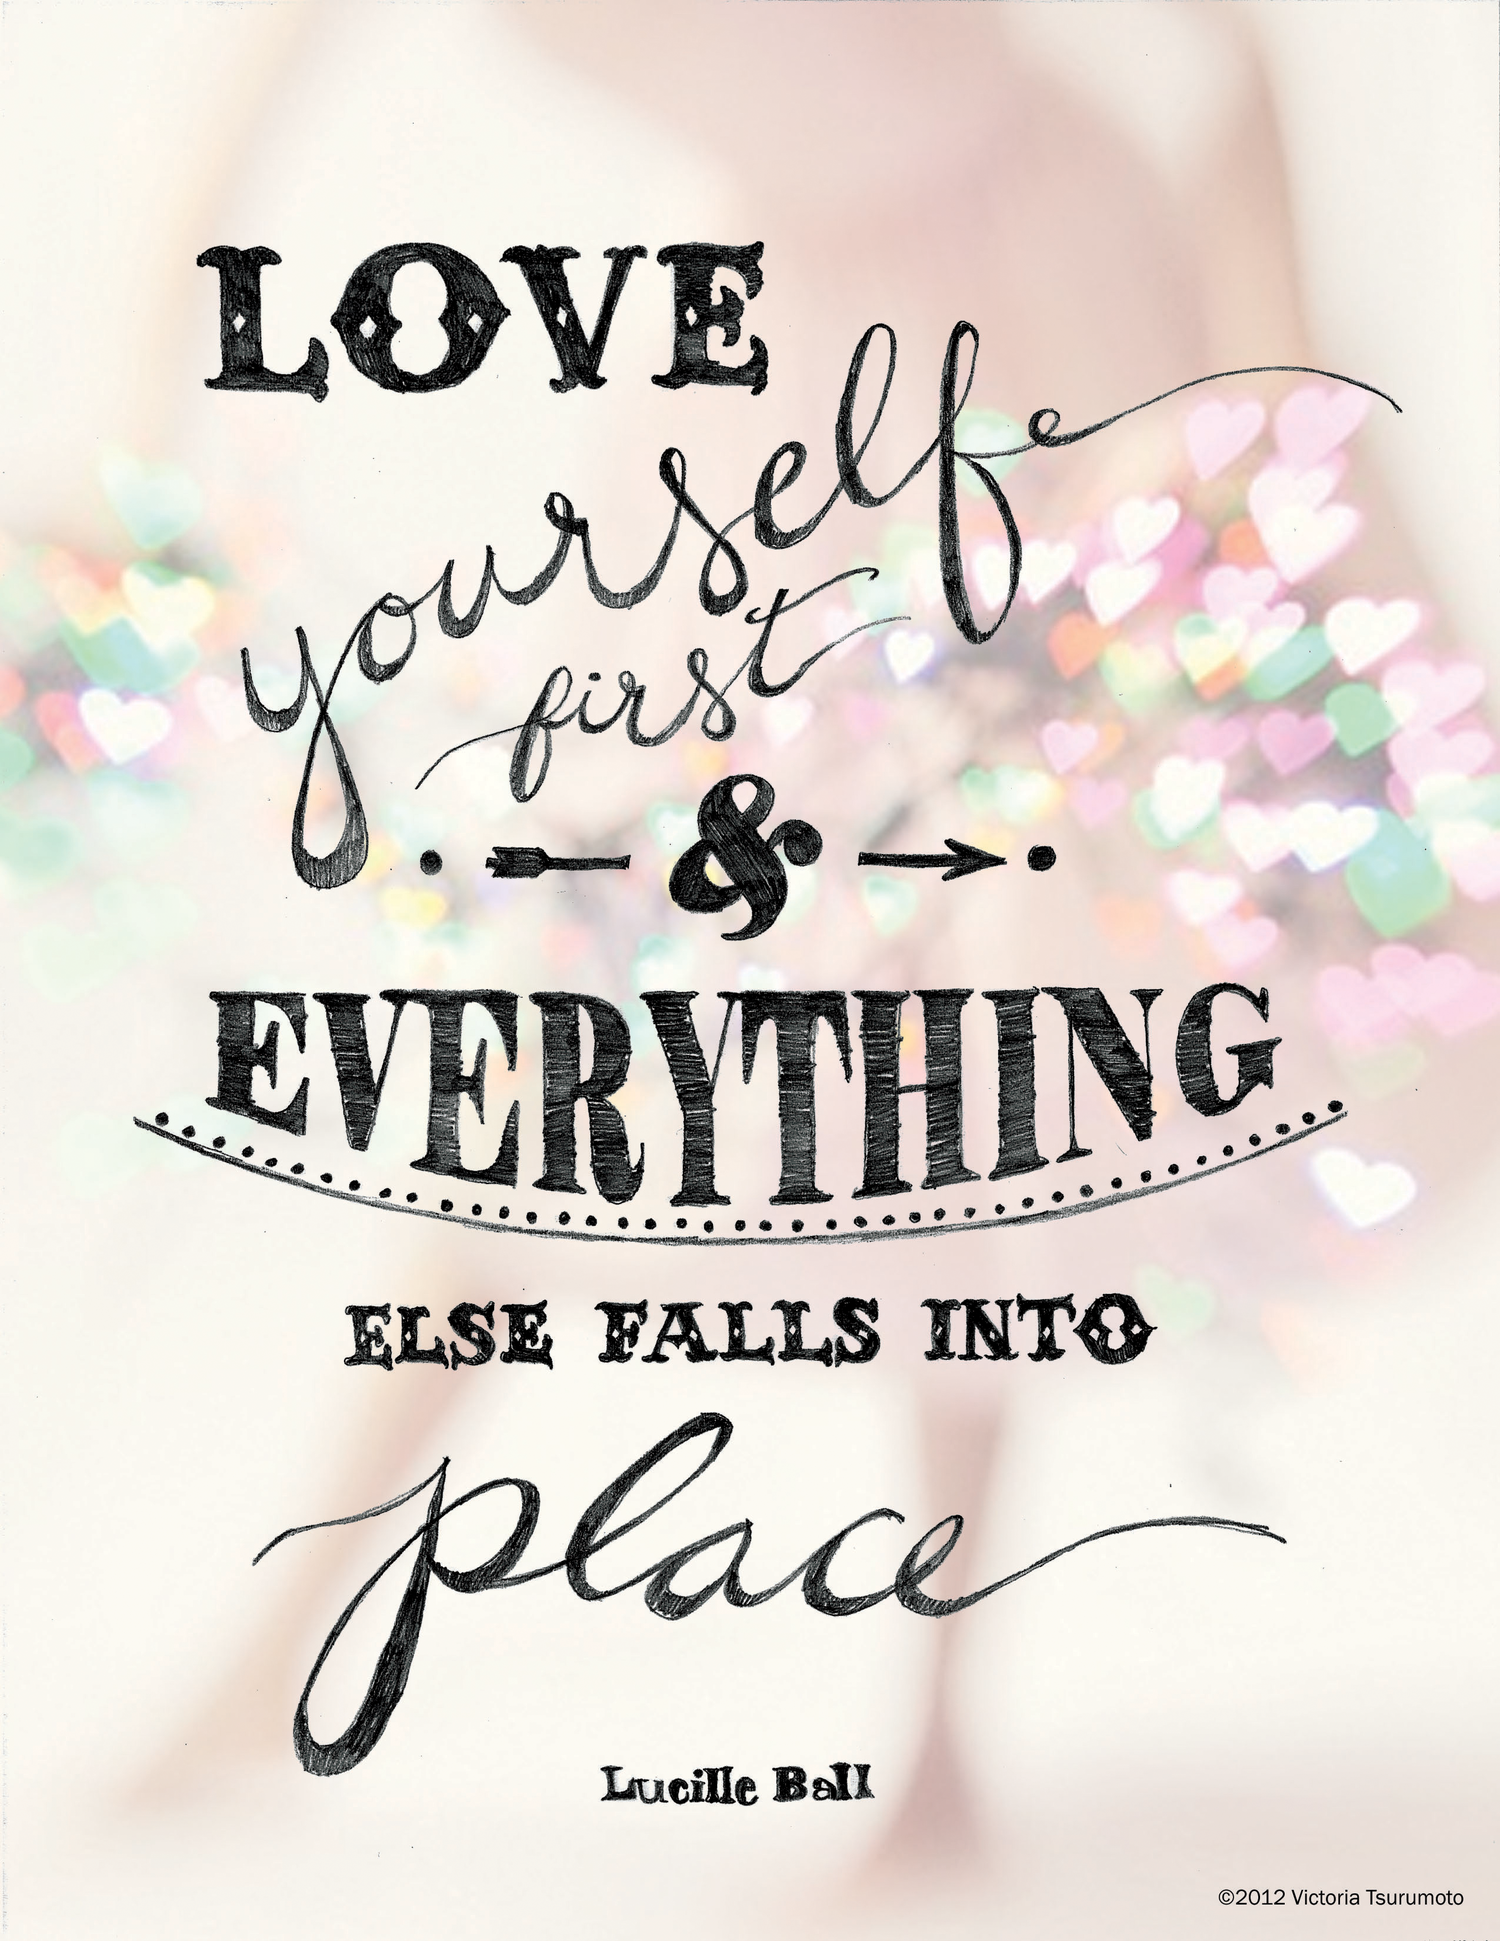 Learning To Love Yourself Quotes Show Yourself Love With These 10 Self Care Tips  Self Love Is